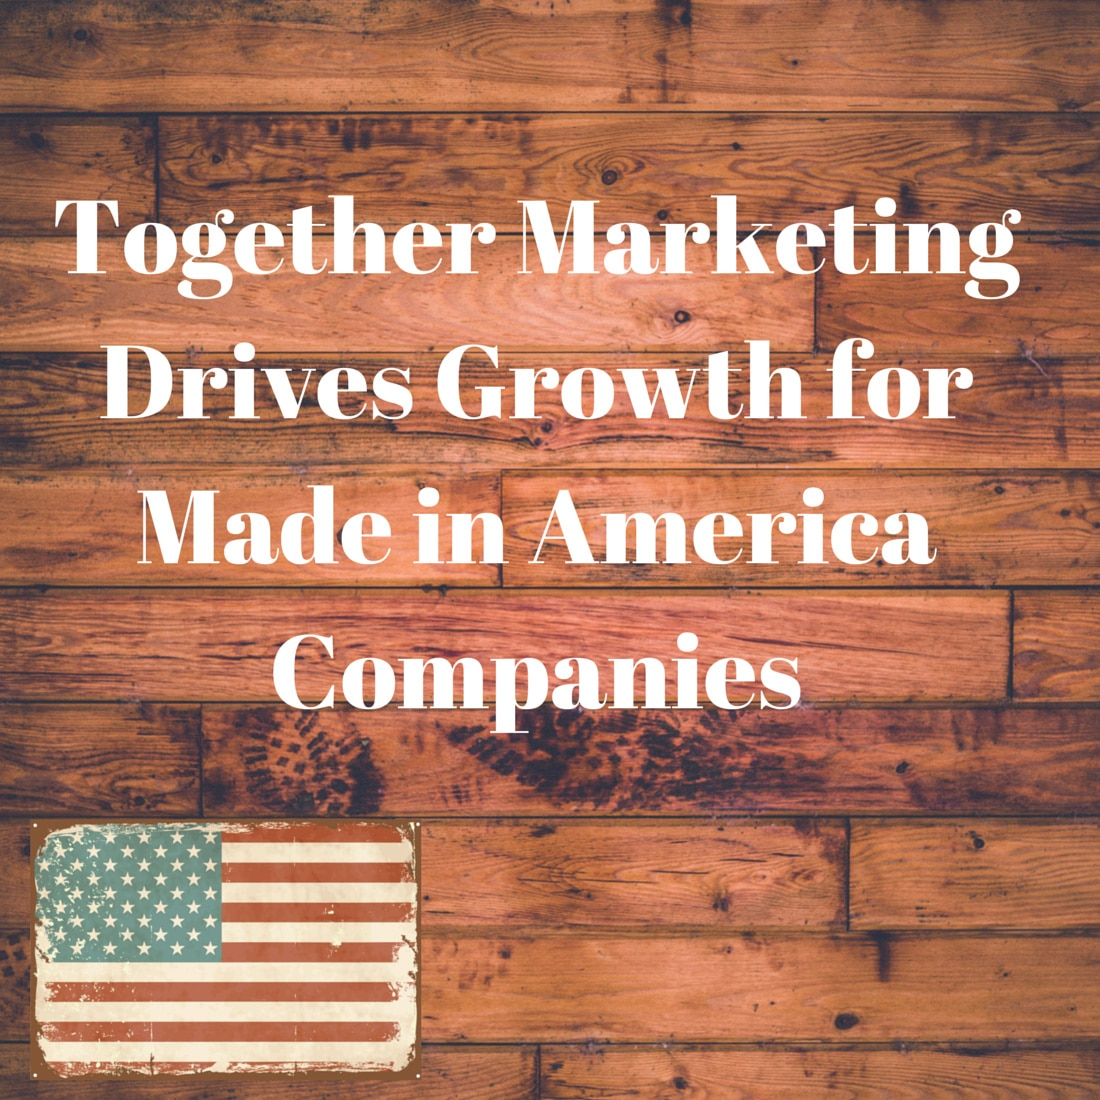 Together Marketing Drives Growth for Made in America Companies